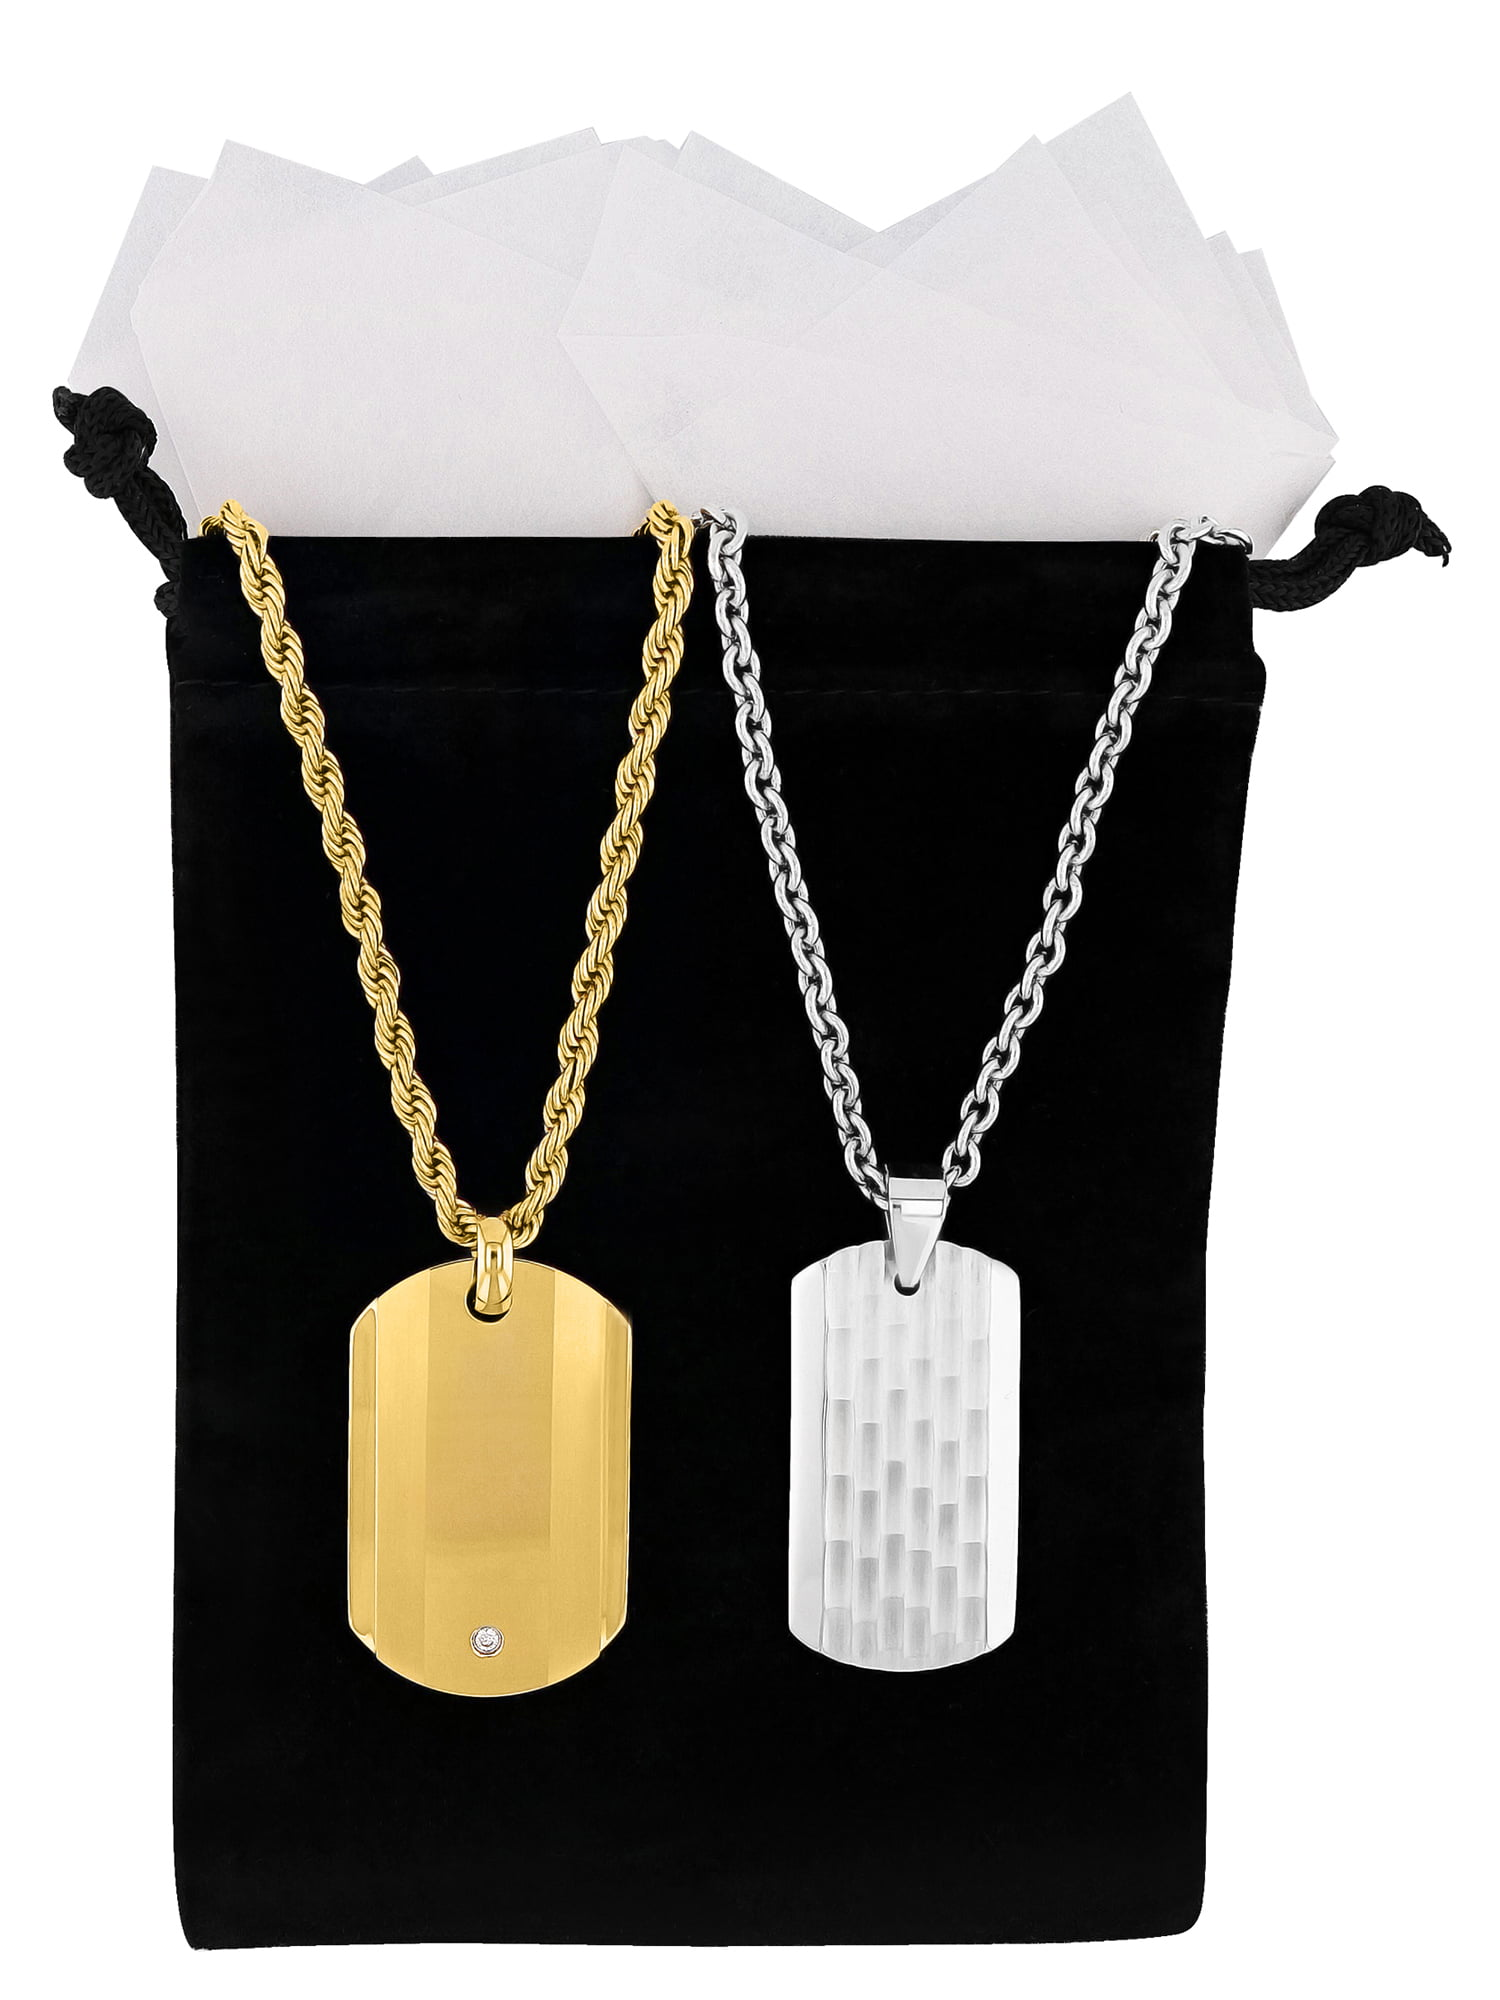 Bonyak Jewelry Stainless Steel Polished Black IP-Plated Flames Dog Tag Necklace in Stainless Steel